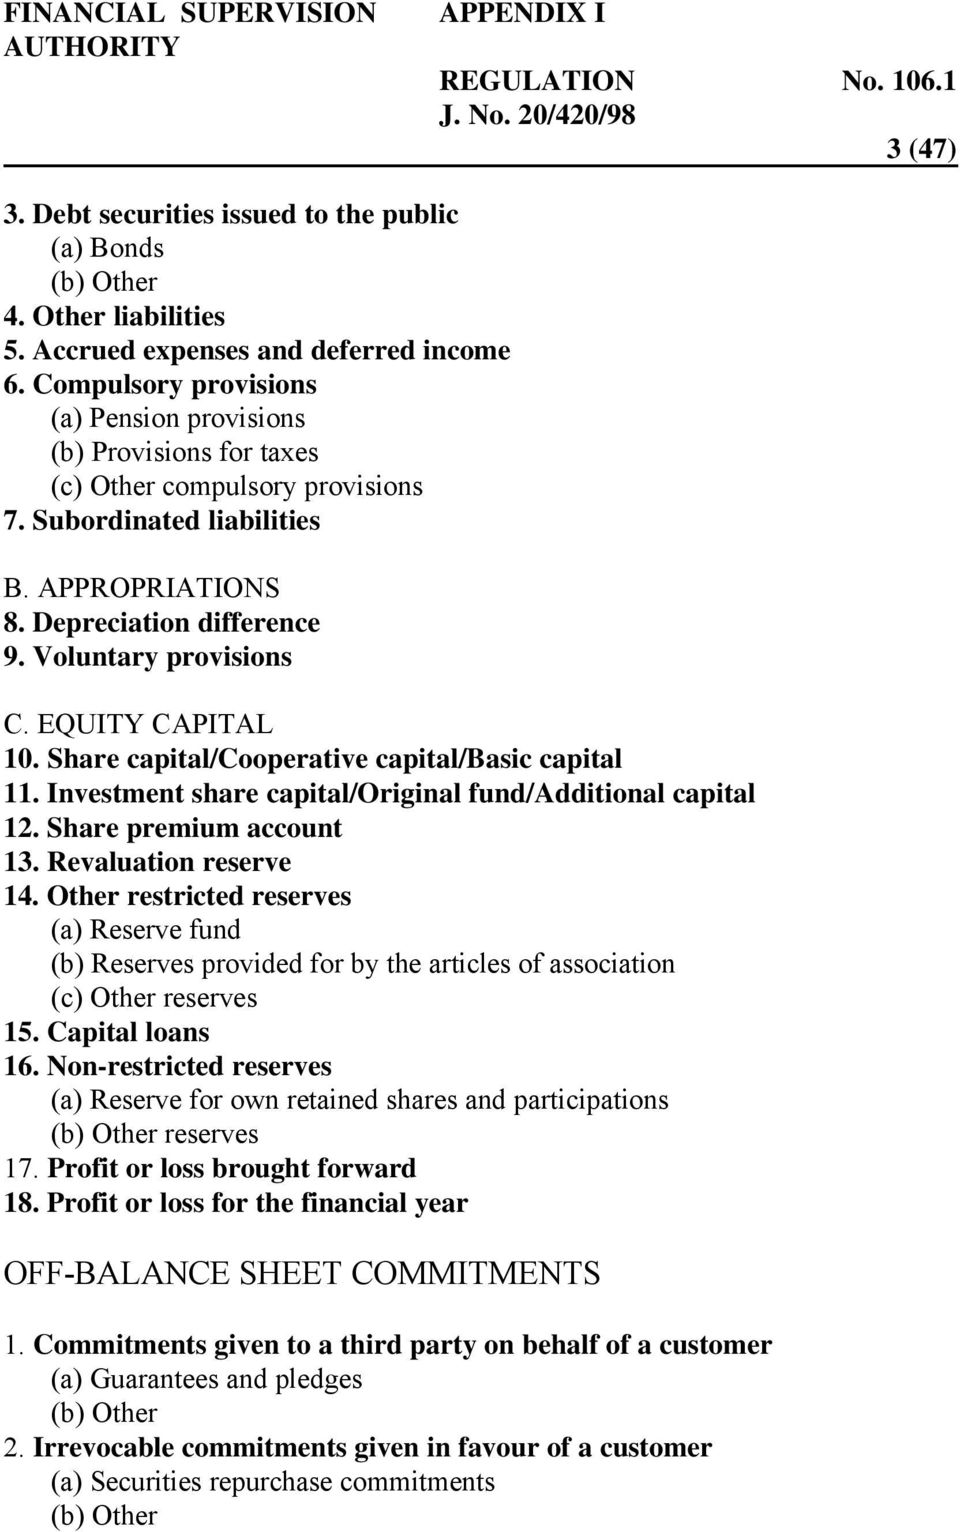 Voluntary provisions C. EQUITY CAPITAL 10. Share capital/cooperative capital/basic capital 11. Investment share capital/original fund/additional capital 12. Share premium account 13.